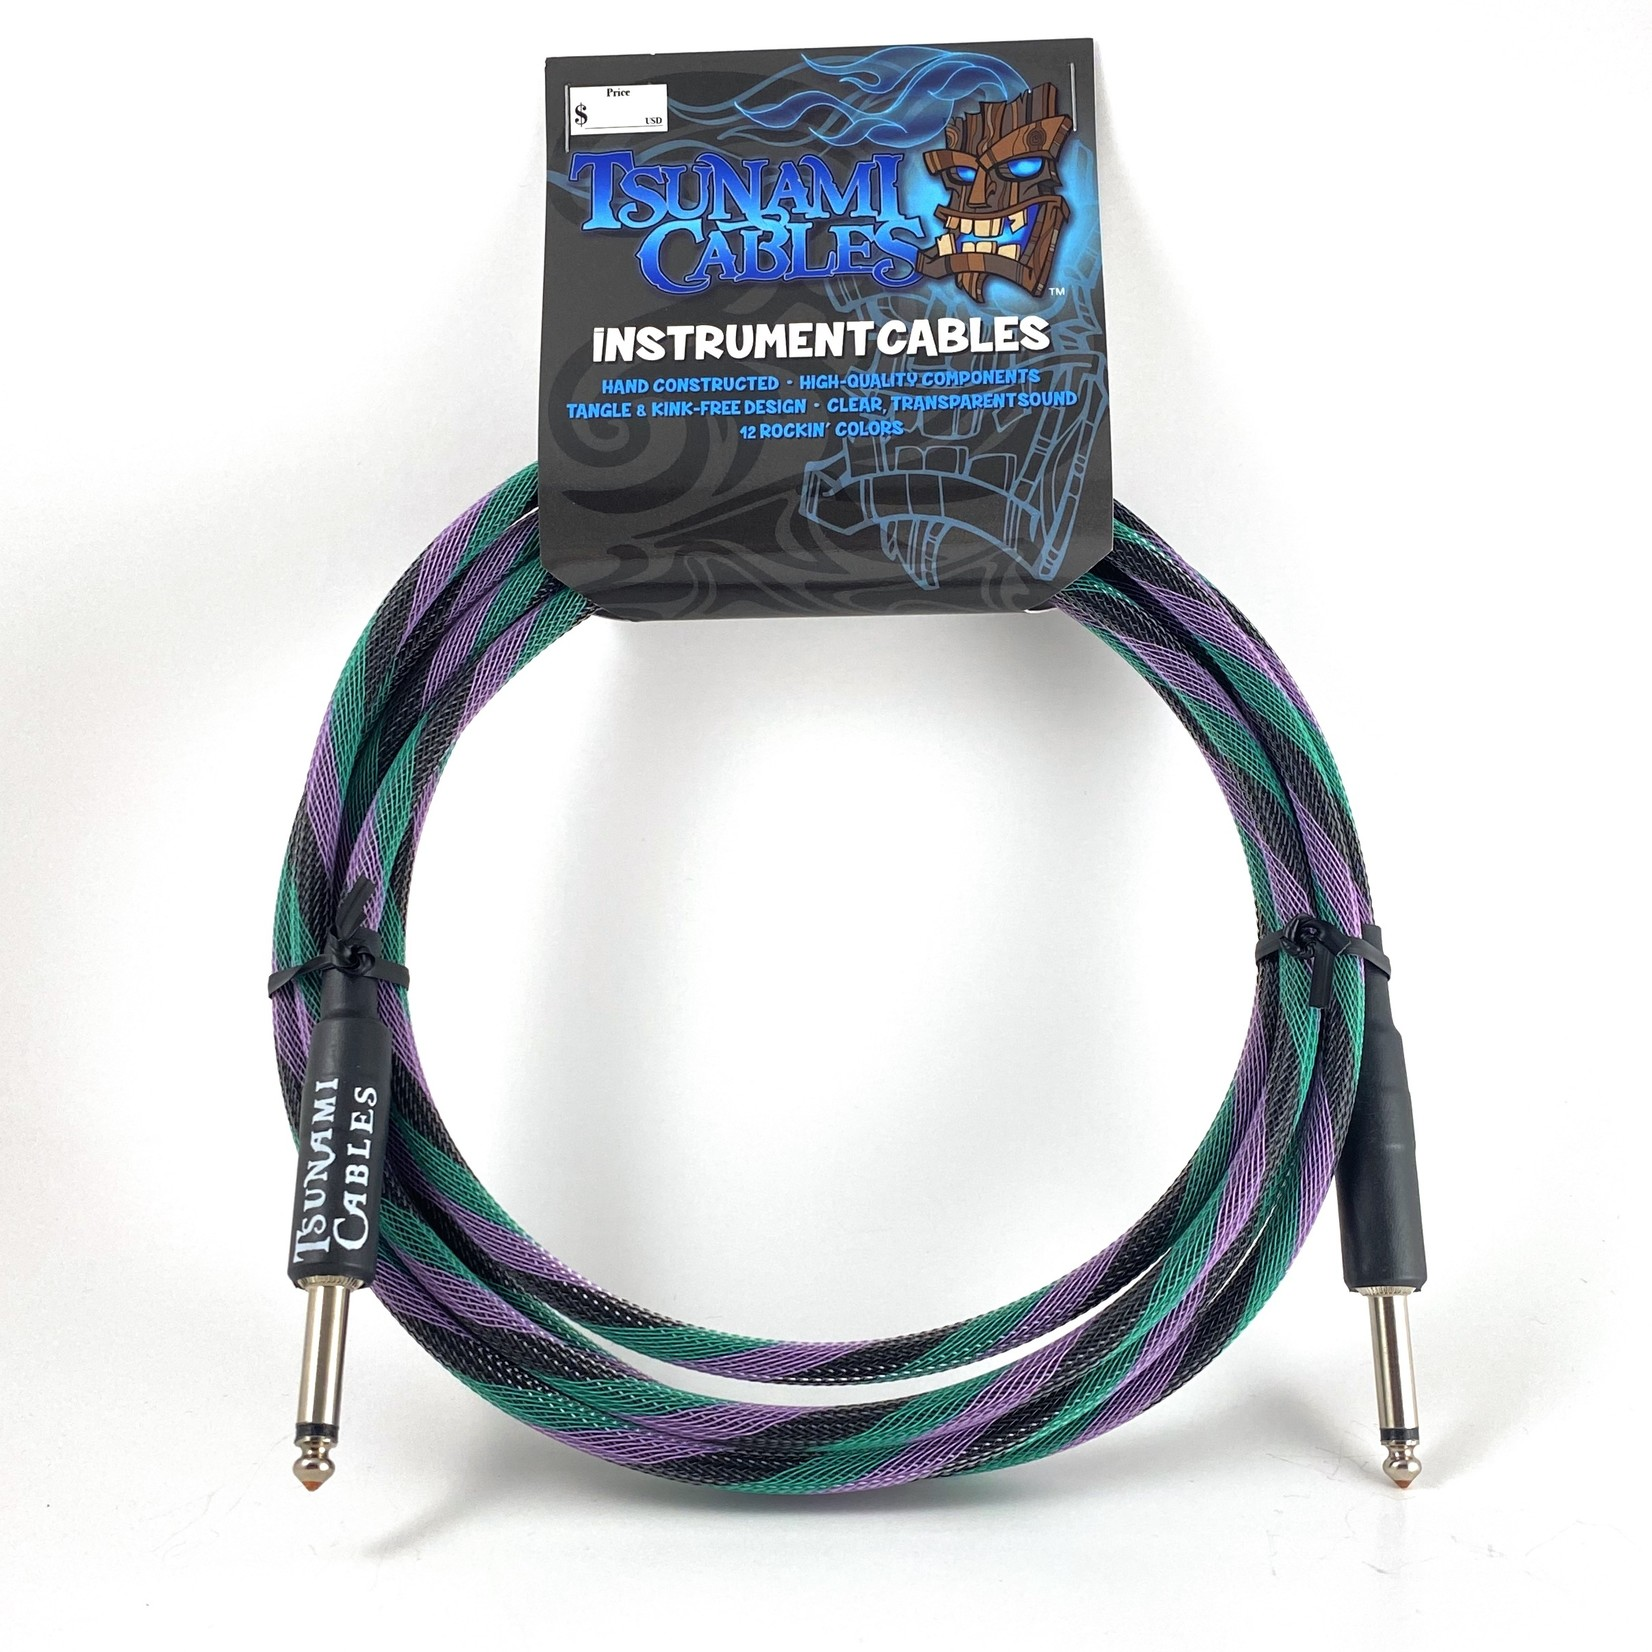 """Tsunami Cables Tsunami Cables 10' Handcrafted Premium Instrument Cable, 1/4"""" Straight-Straight, """"Twilight"""""""